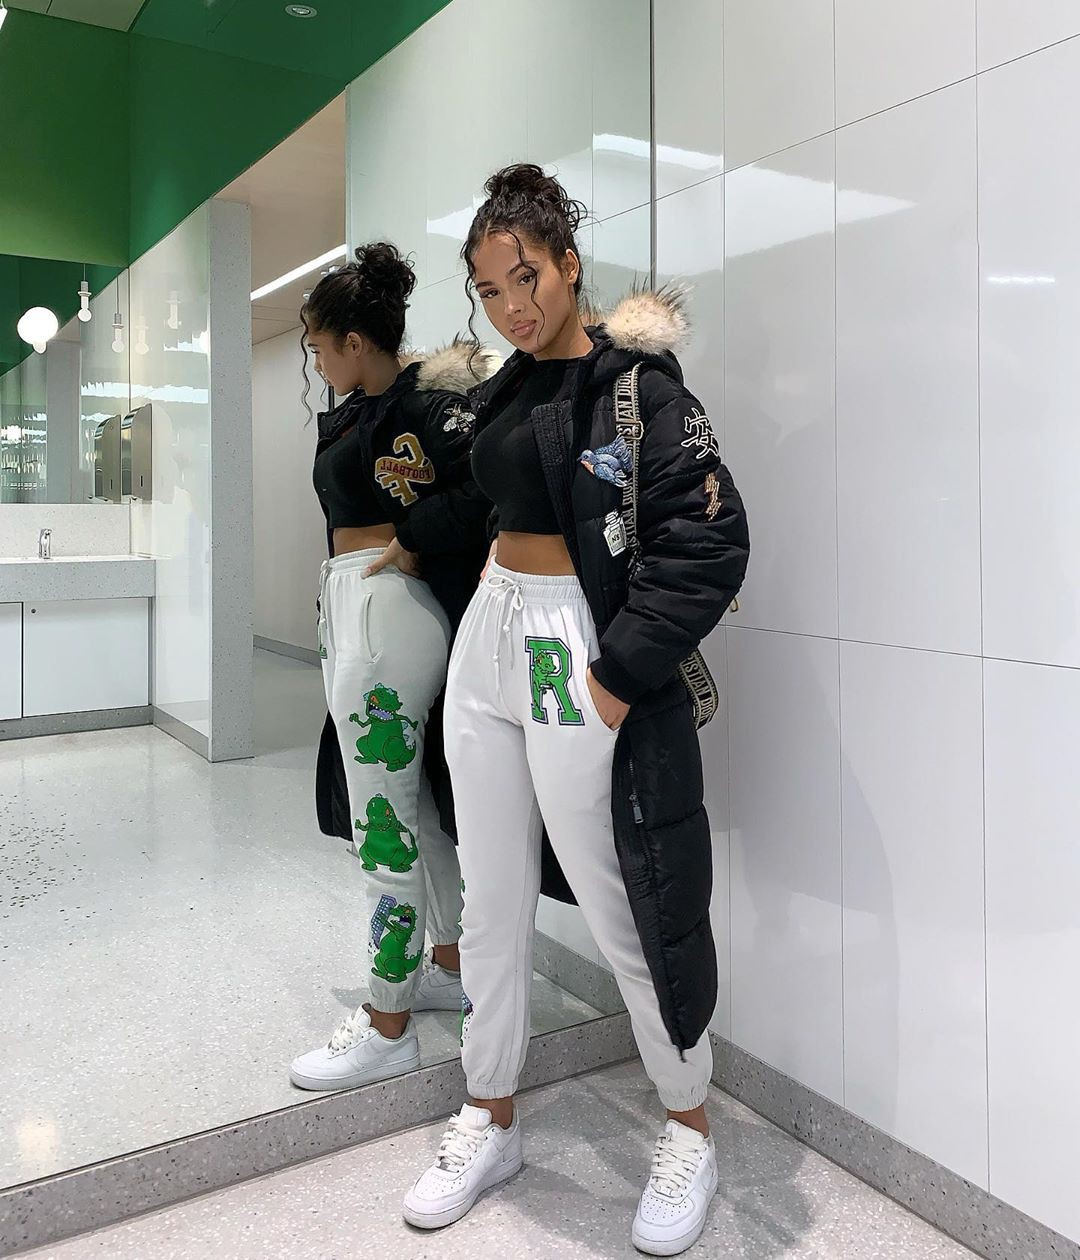 Green and white sportswear, trousers, jacket